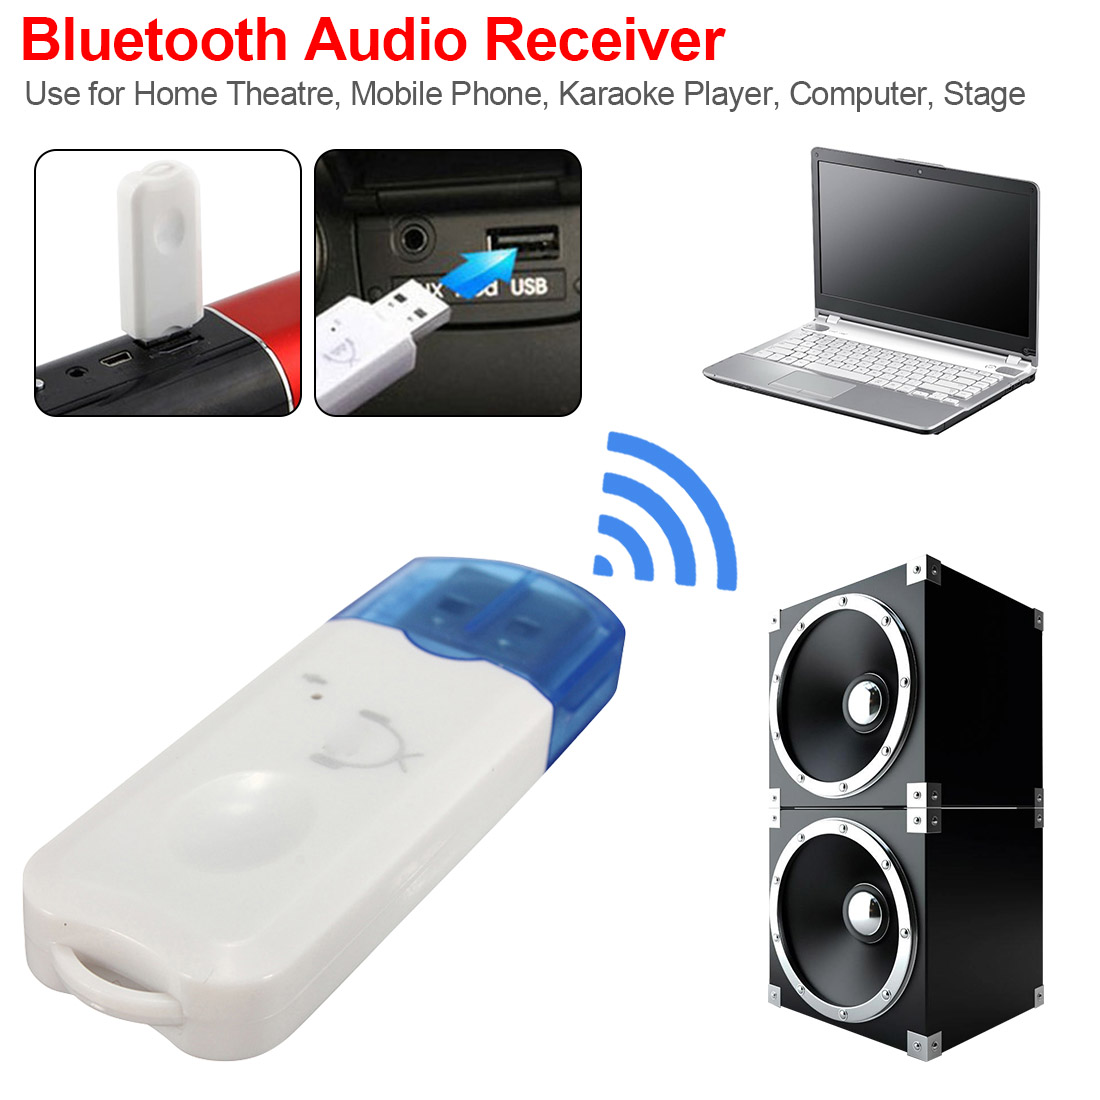 Bluetooth V2.1 Adapter USB Dongle for Computer PC Wireless Mouse Bluetooth Speaker 2.1 Music Receiver USB Bluetooth AdapterBluetooth V2.1 Adapter USB Dongle for Computer PC Wireless Mouse Bluetooth Speaker 2.1 Music Receiver USB Bluetooth Adapter